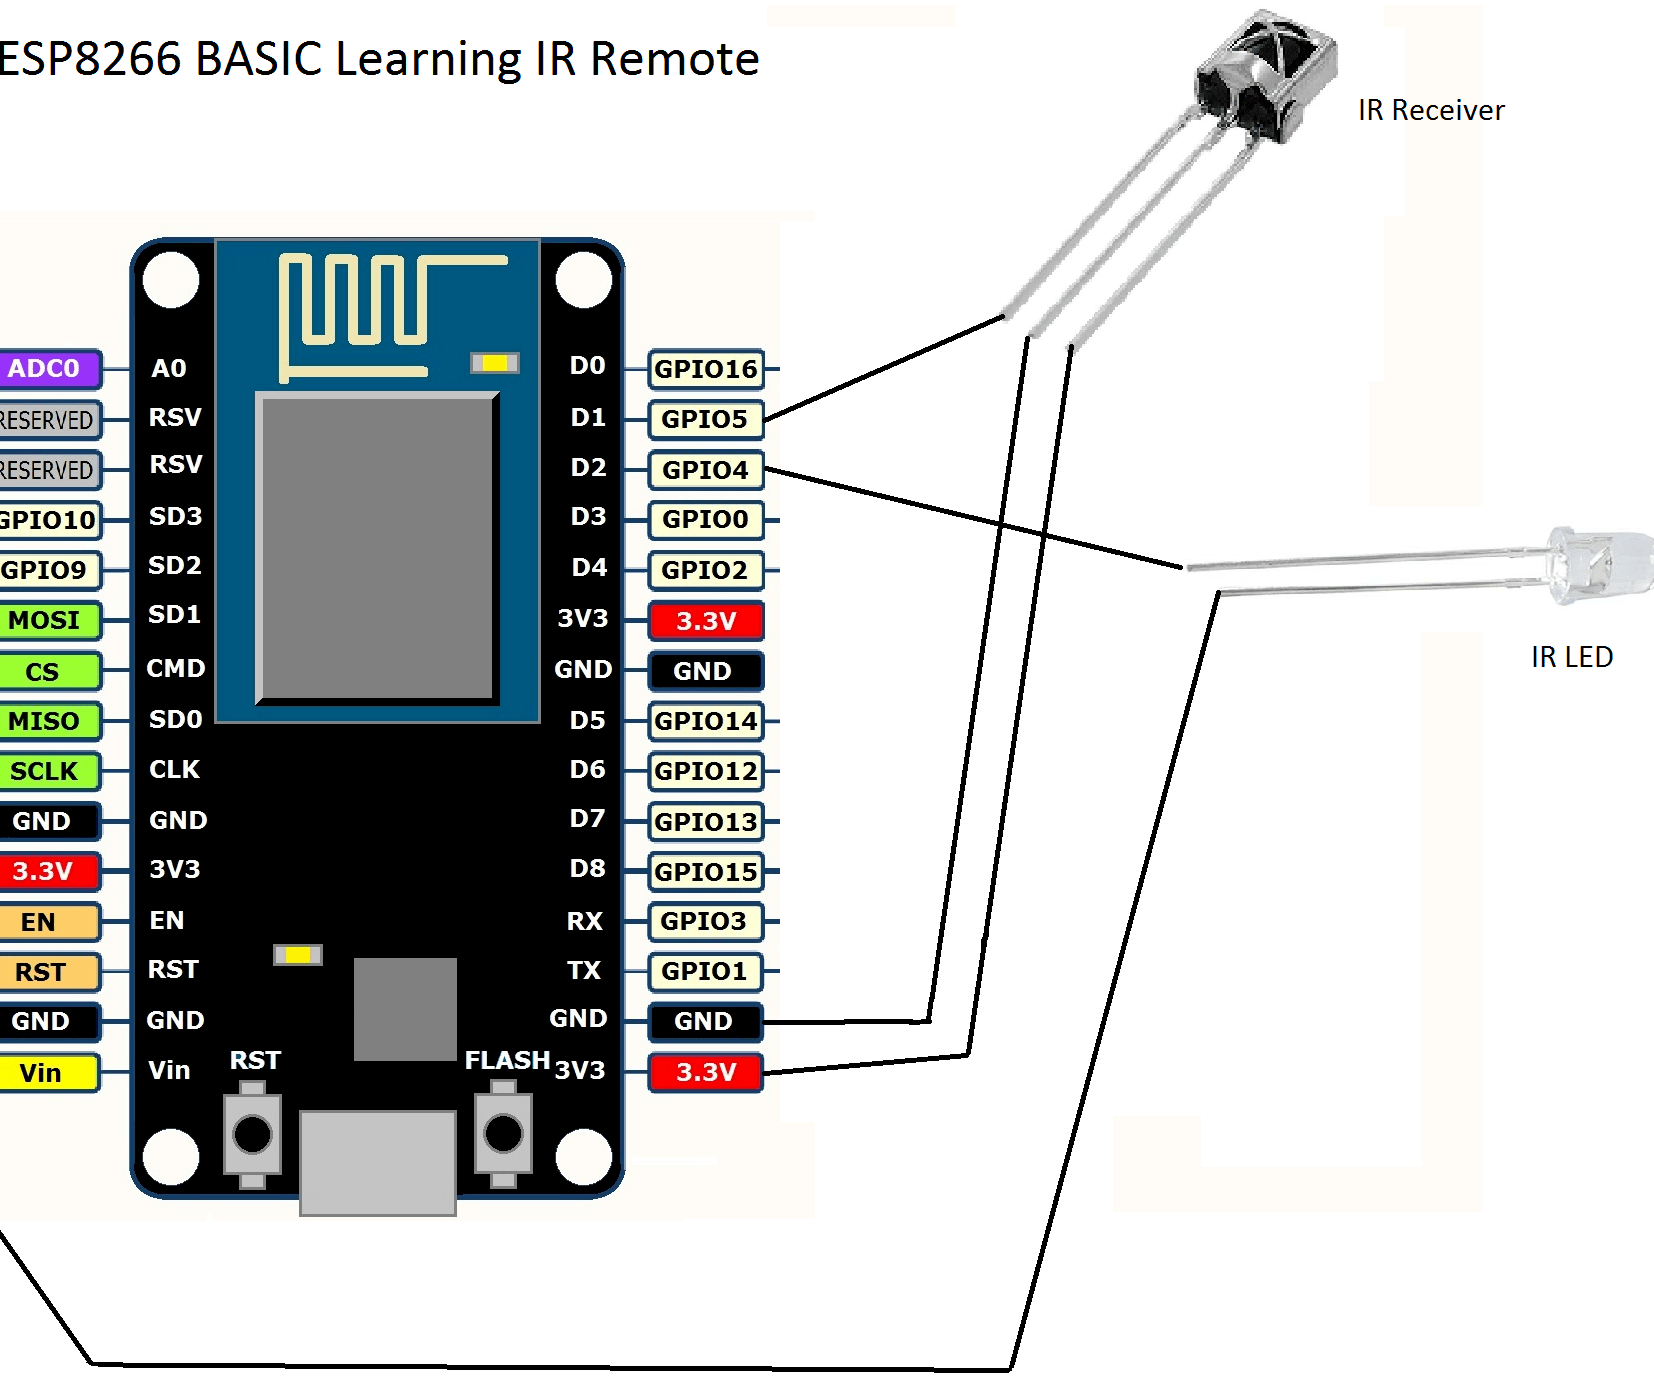 easiest esp8266 learning ir remote control via wifi 4 steps with pictures  [ 1654 x 1379 Pixel ]